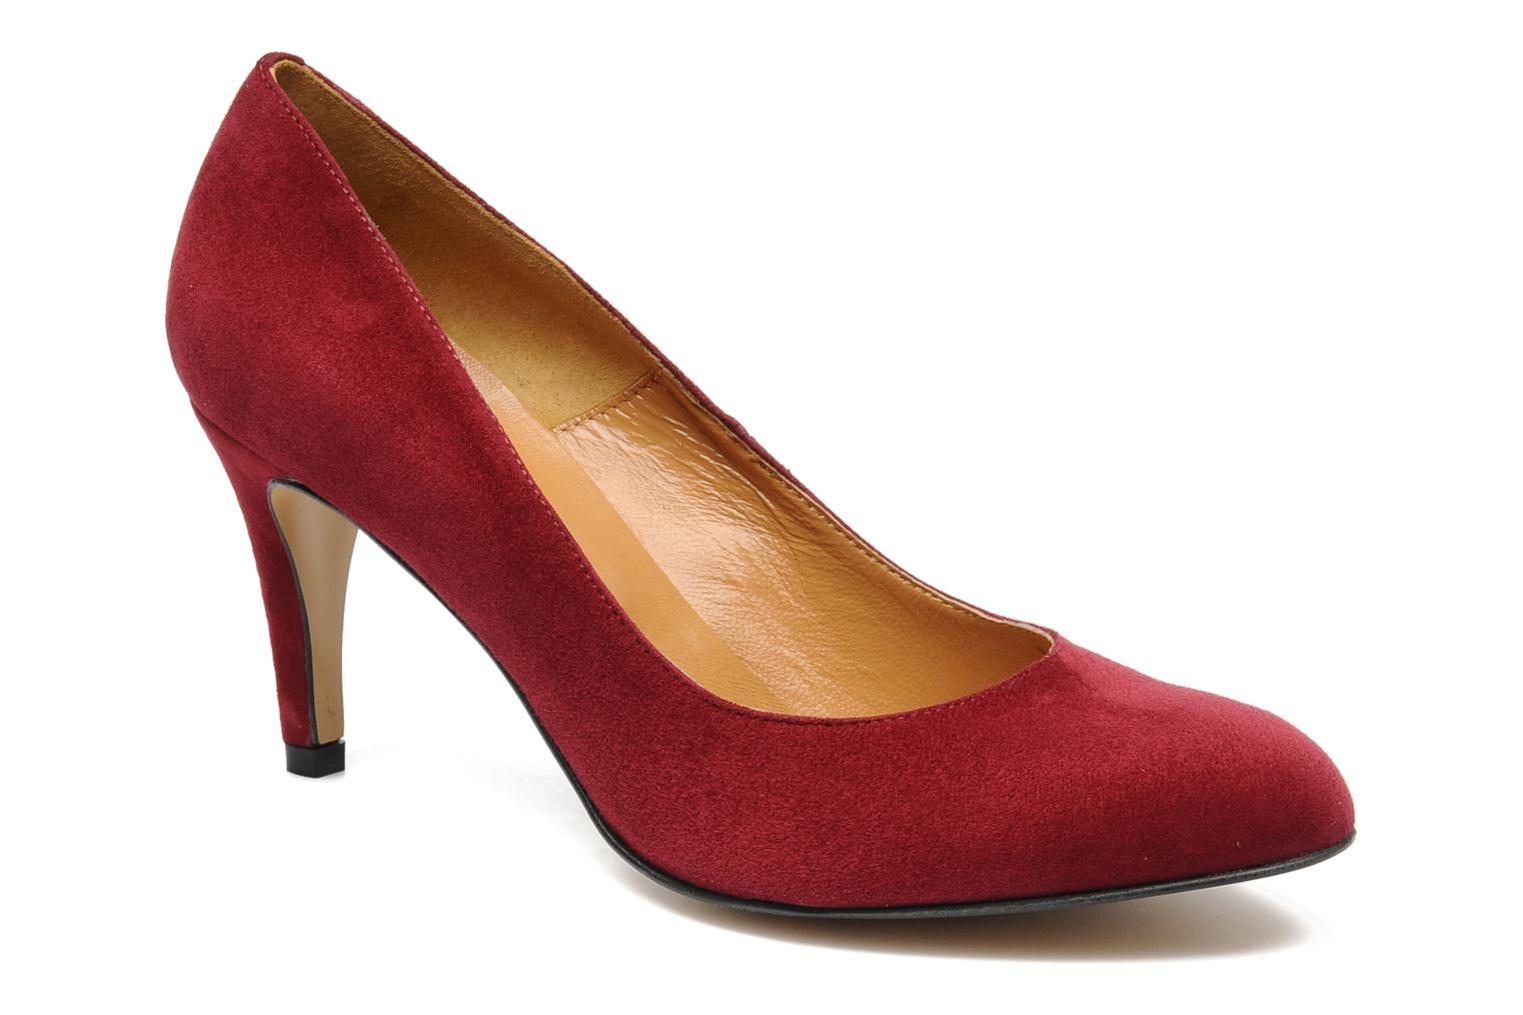 Chaussures à lacets GEORGIA ROSE cuir rouge 37 hUF3xKbm